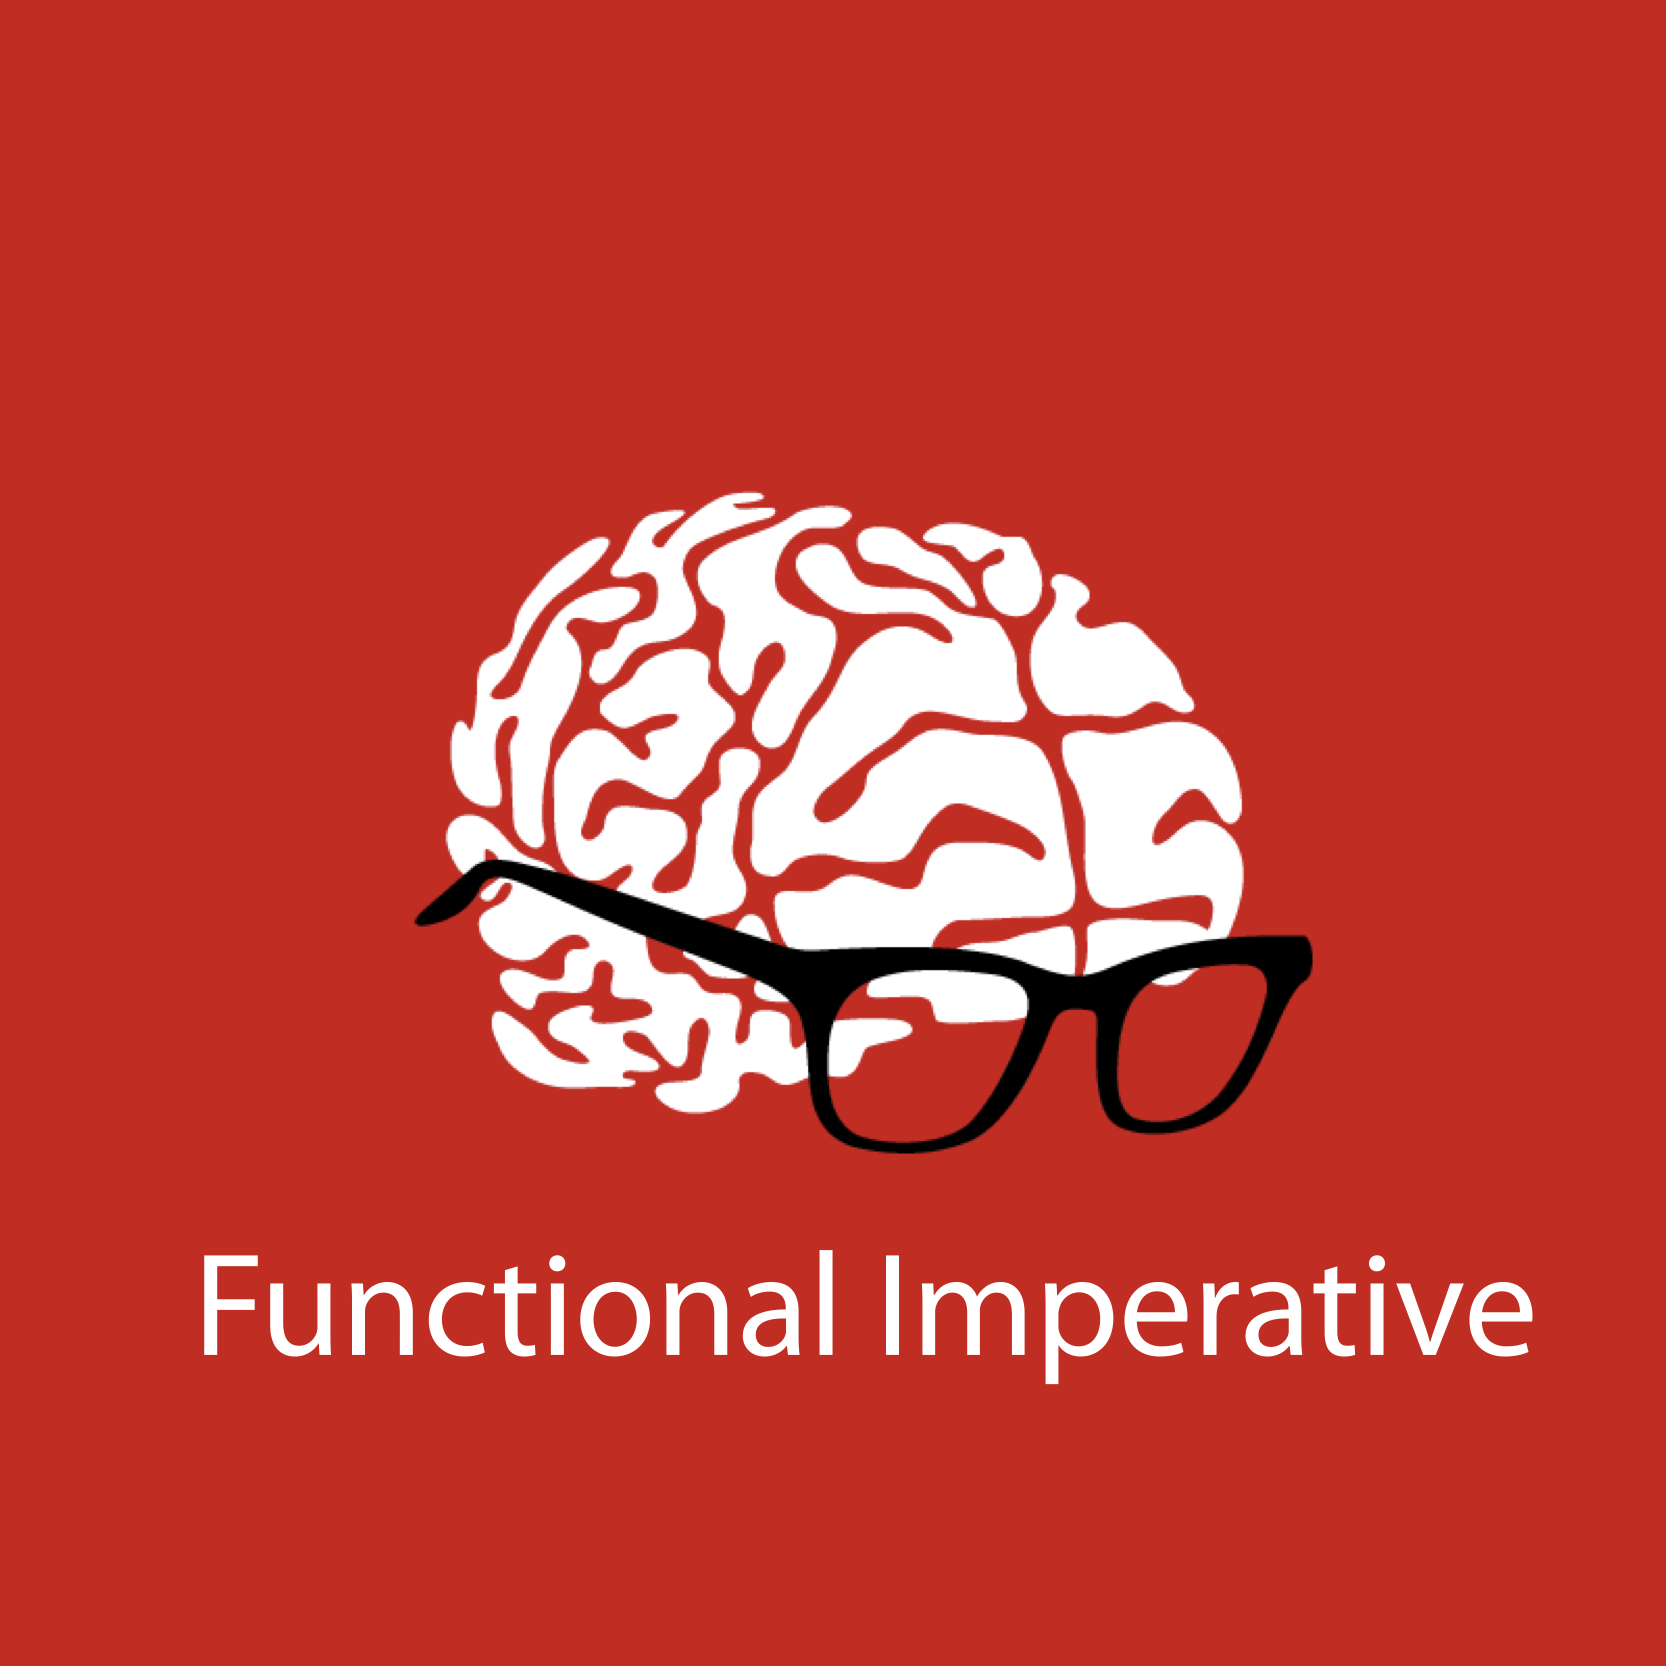 Functional Imperative